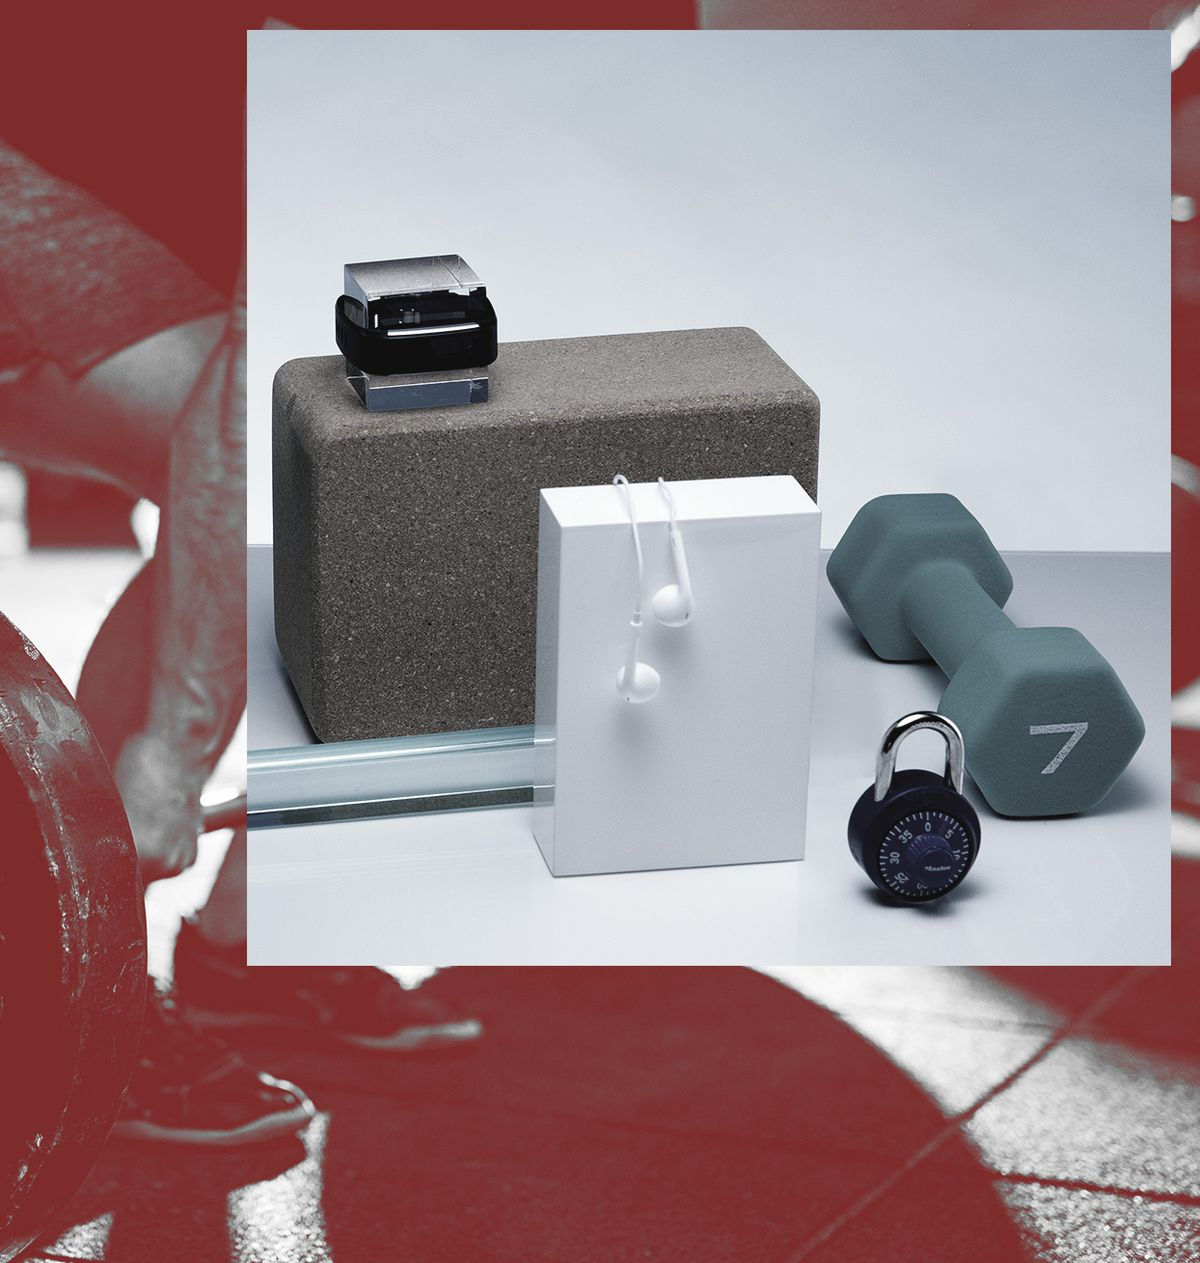 A fitness wearable, earbuds, a handweight and a lock with other wellness products.